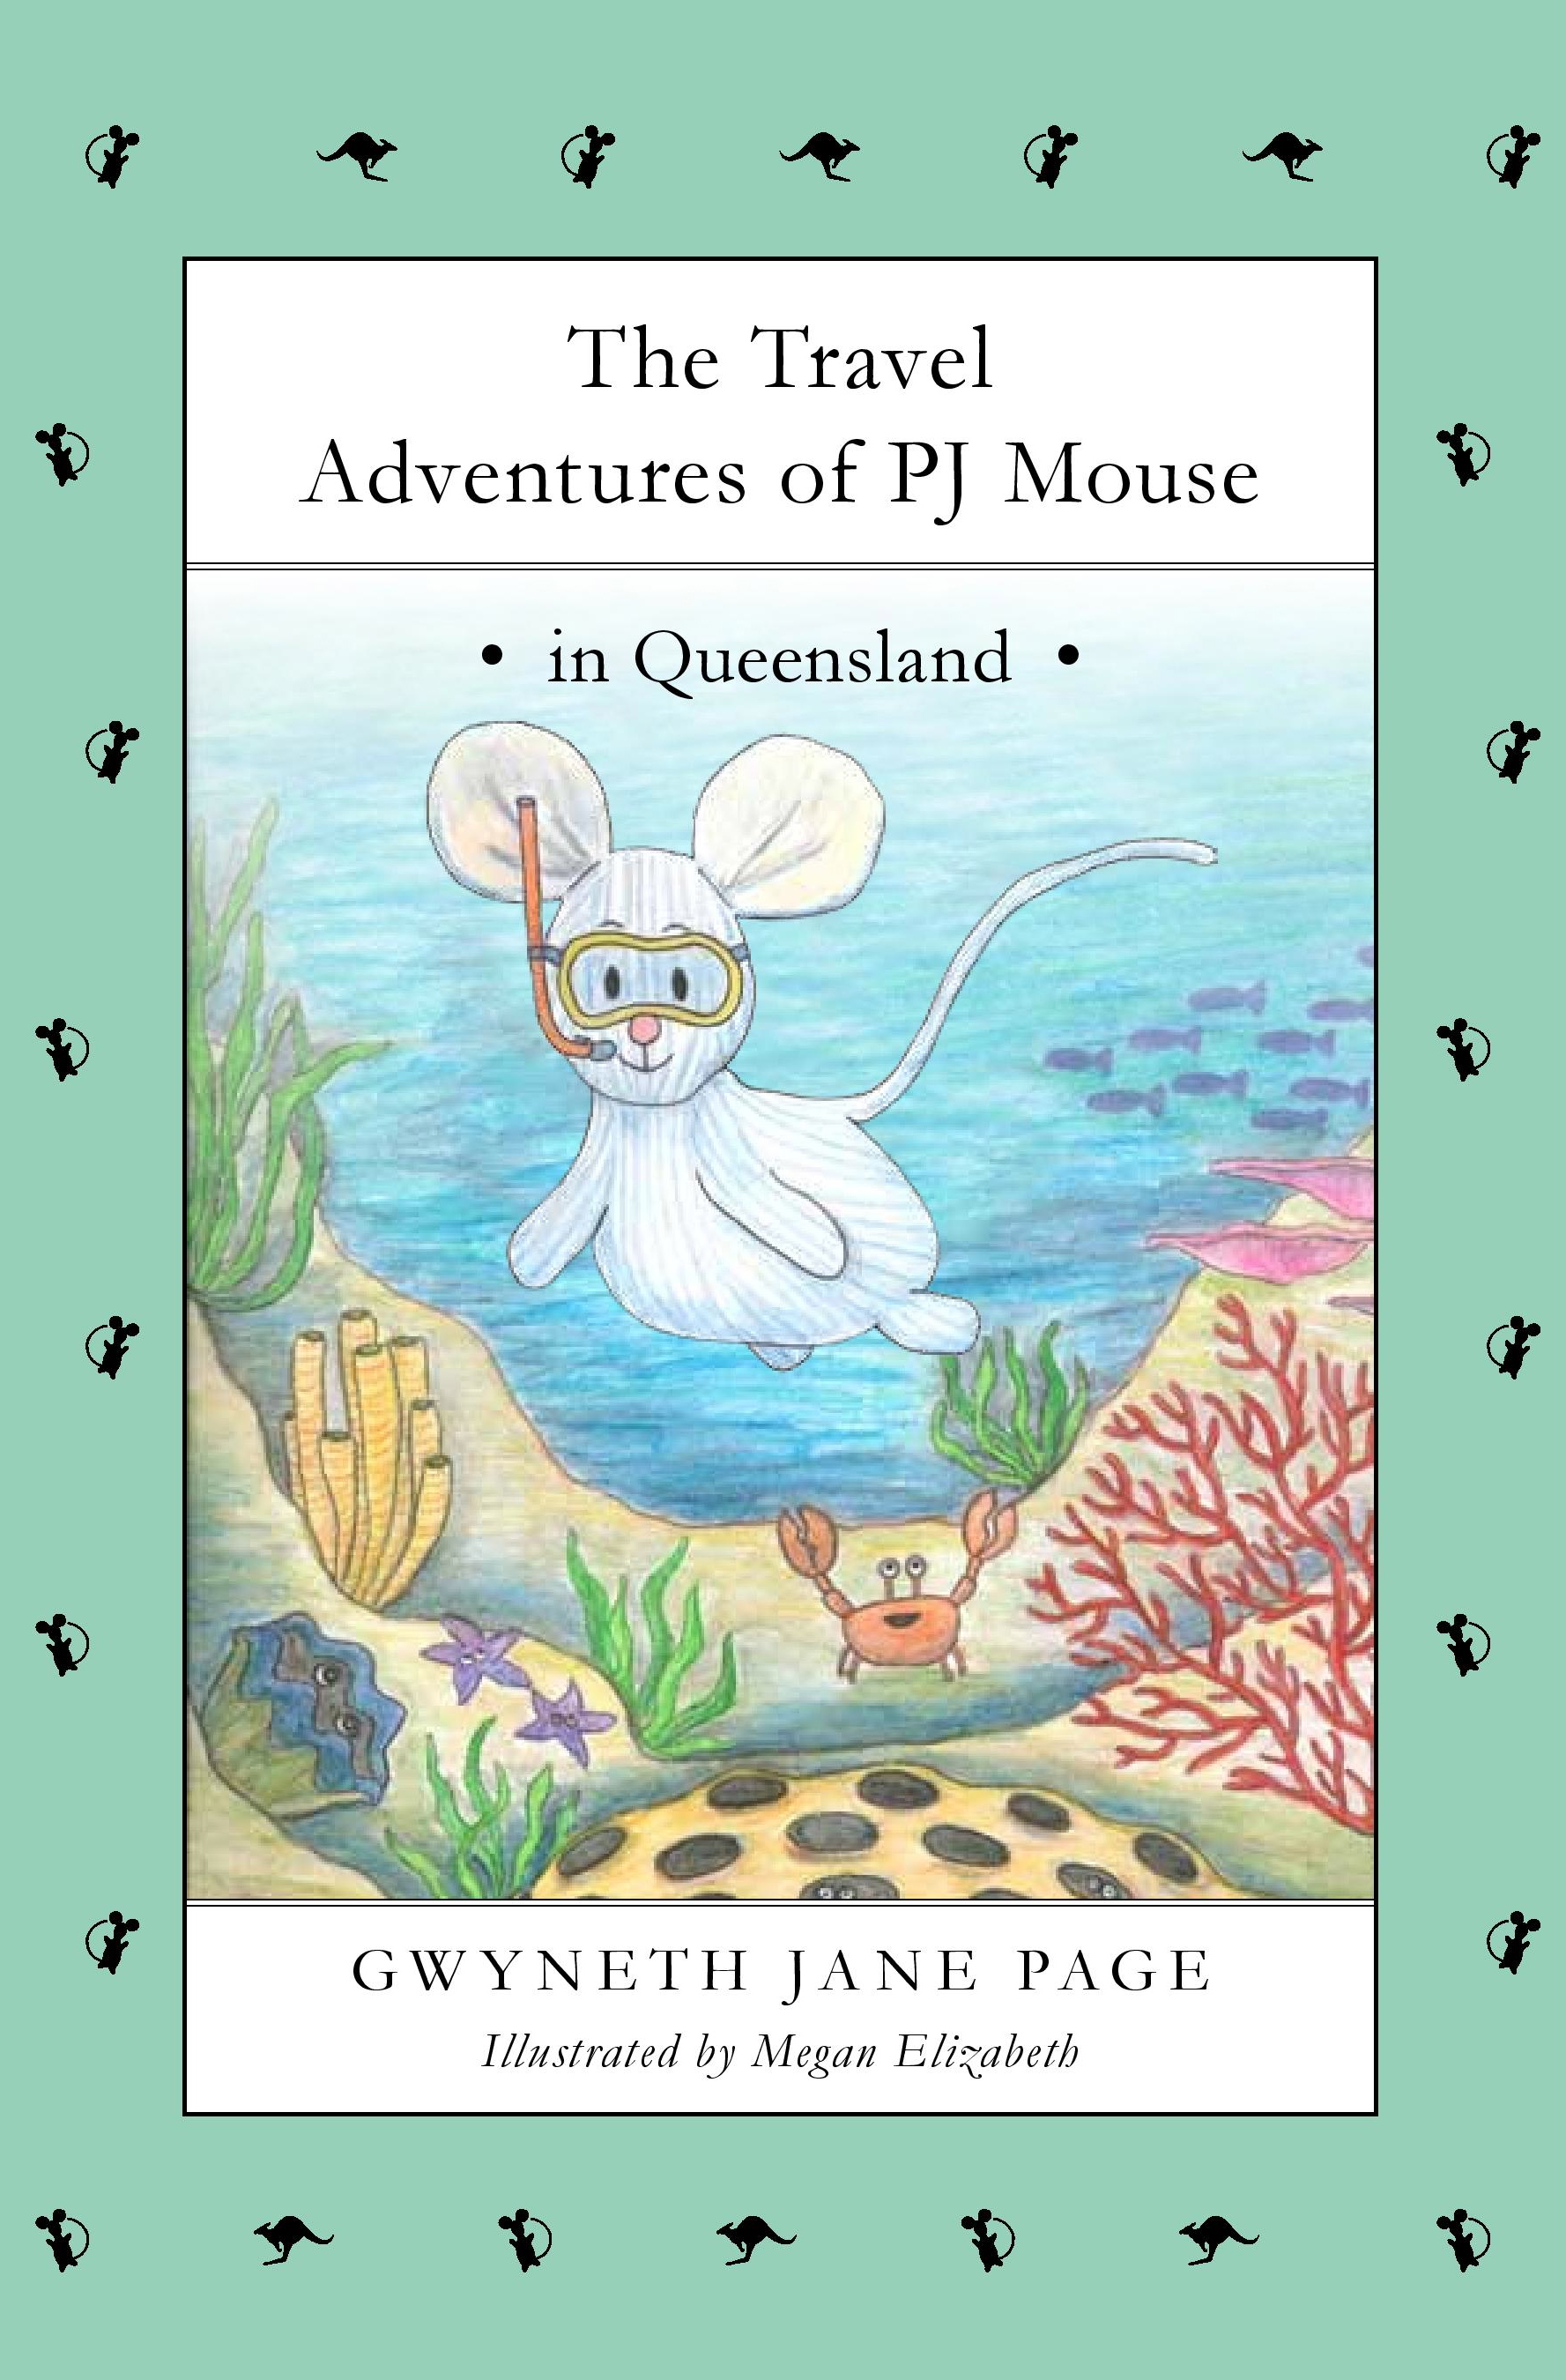 PJ Mouse in Queensland - proof #1-page-001 copy 2 (1).jpg